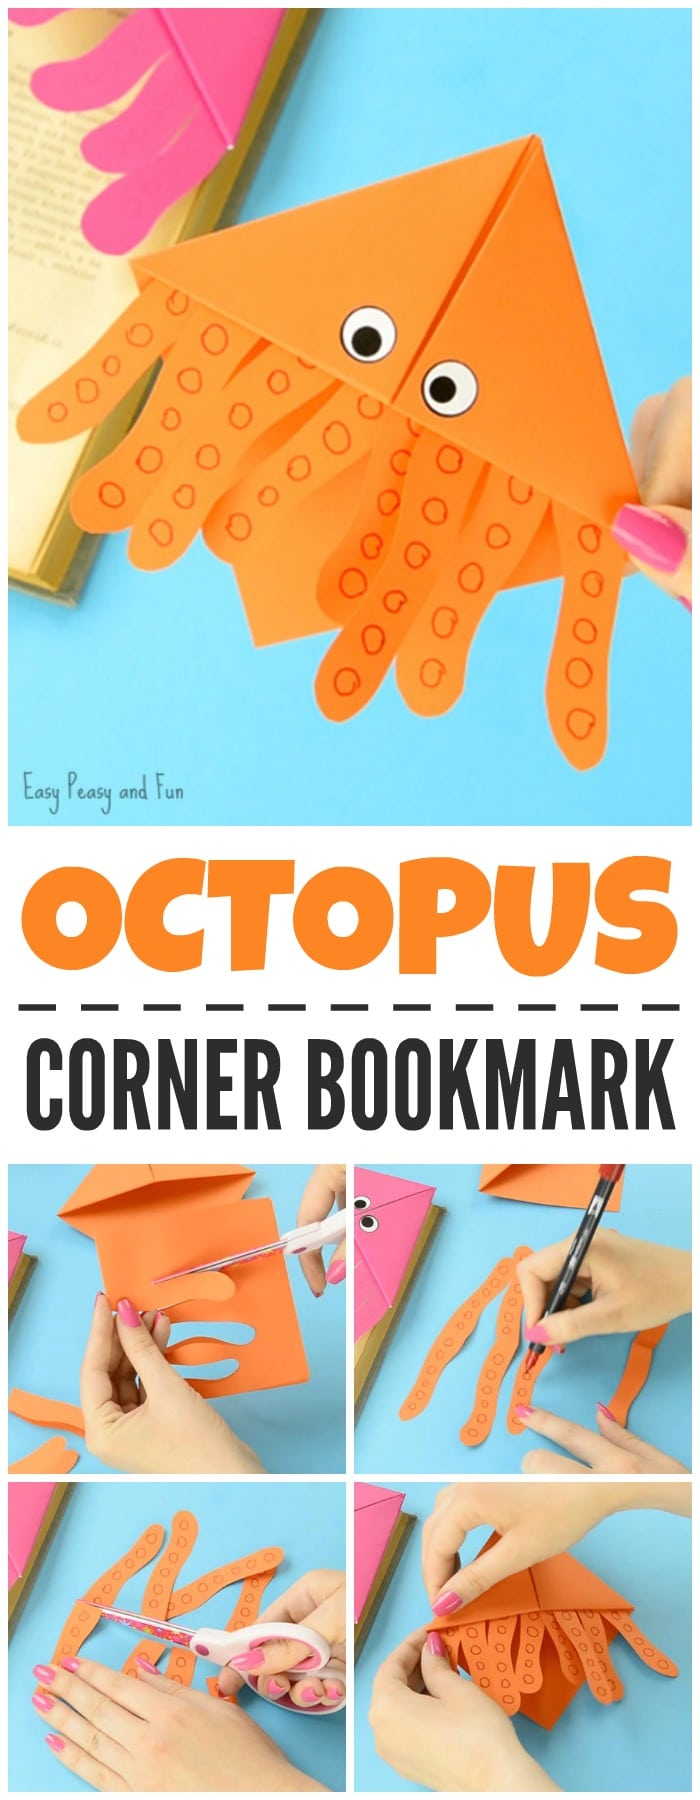 octopus corner bookmarks easy peasy and fun